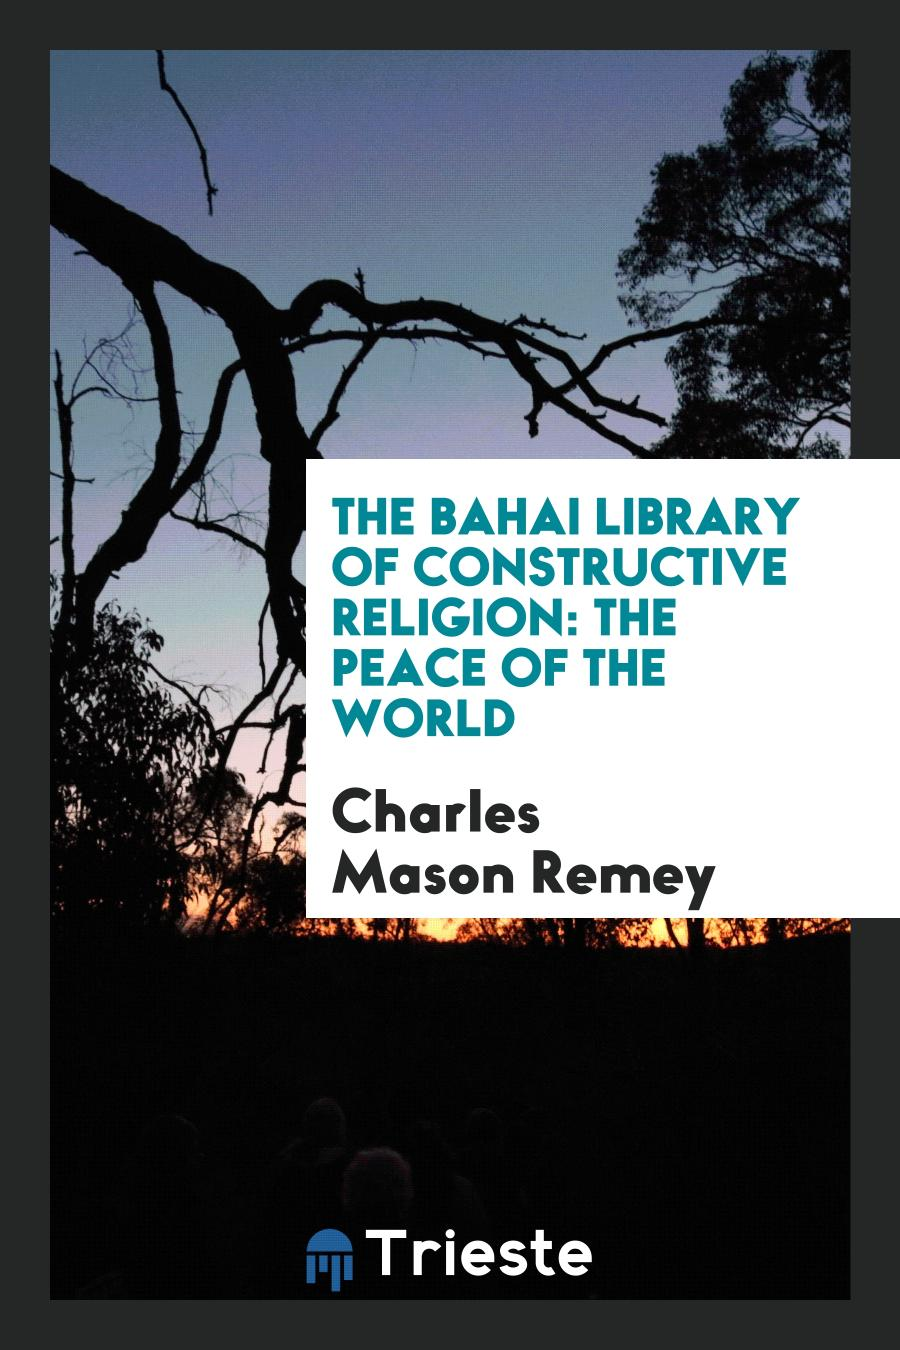 The Bahai Library of Constructive Religion: The Peace of the World